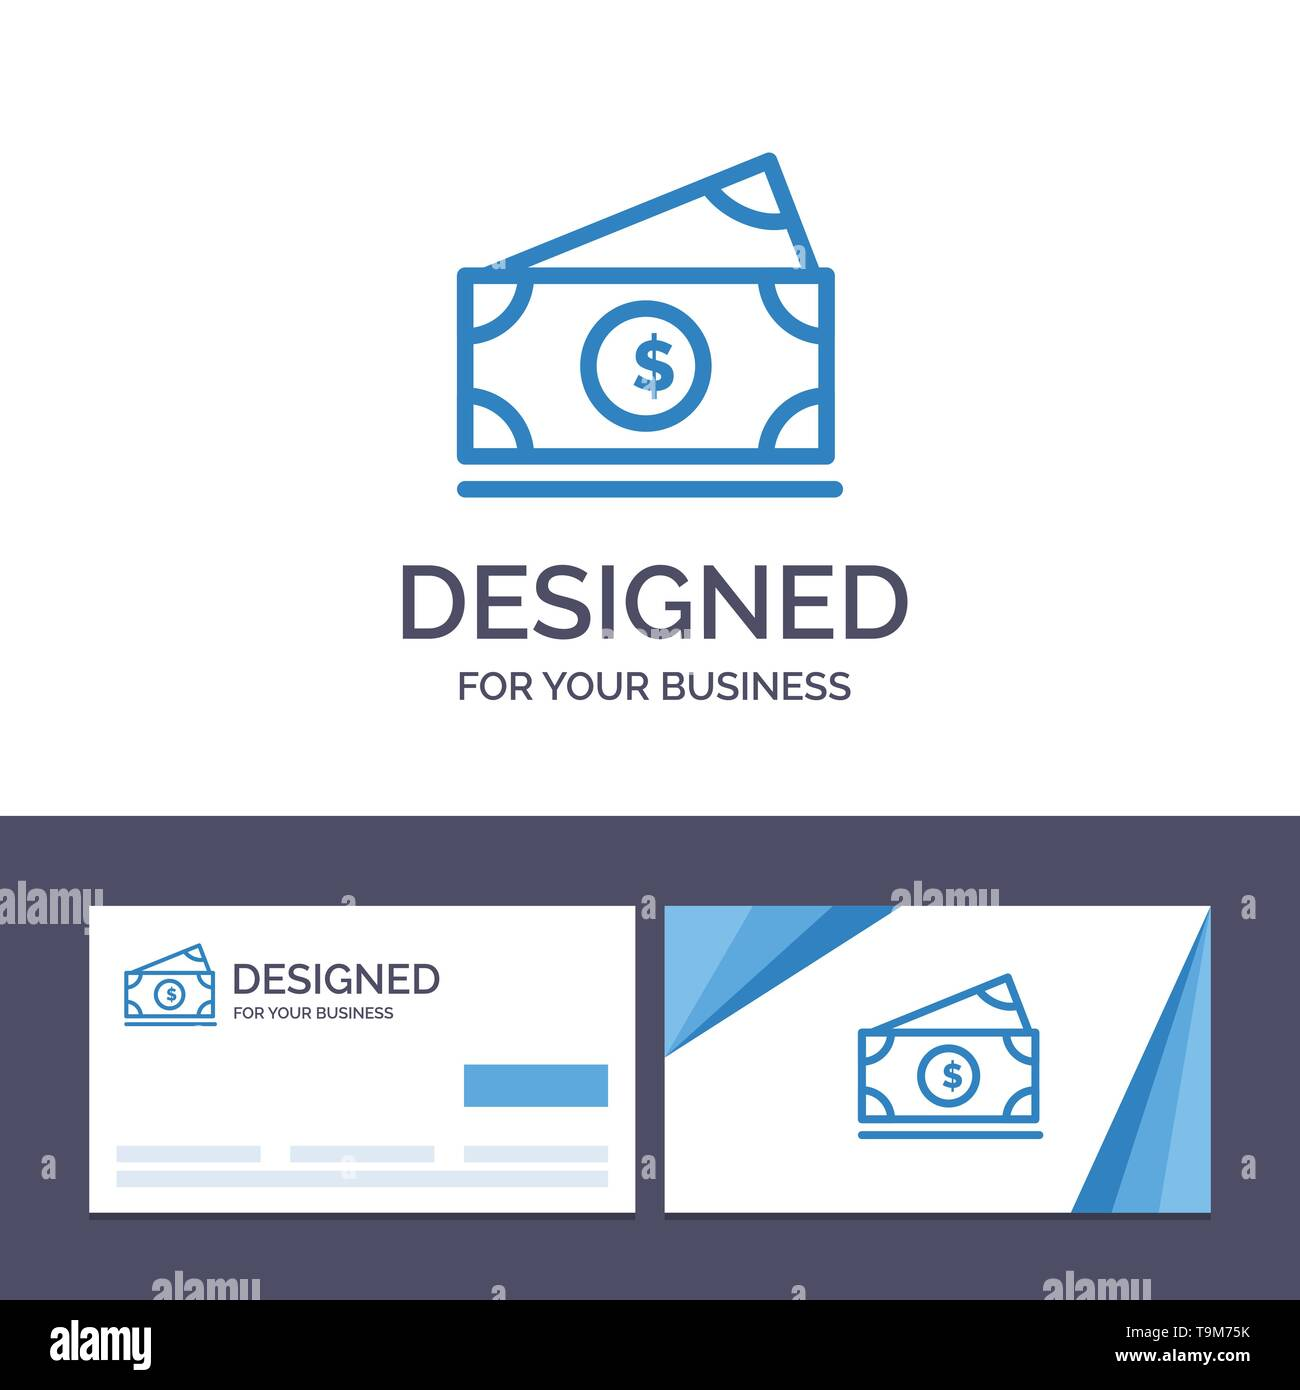 Creative Business Card And Logo Template Dollar Money American Usa Vector Illustration Stock Vector Art Illustration Vector Image 246921743 Alamy